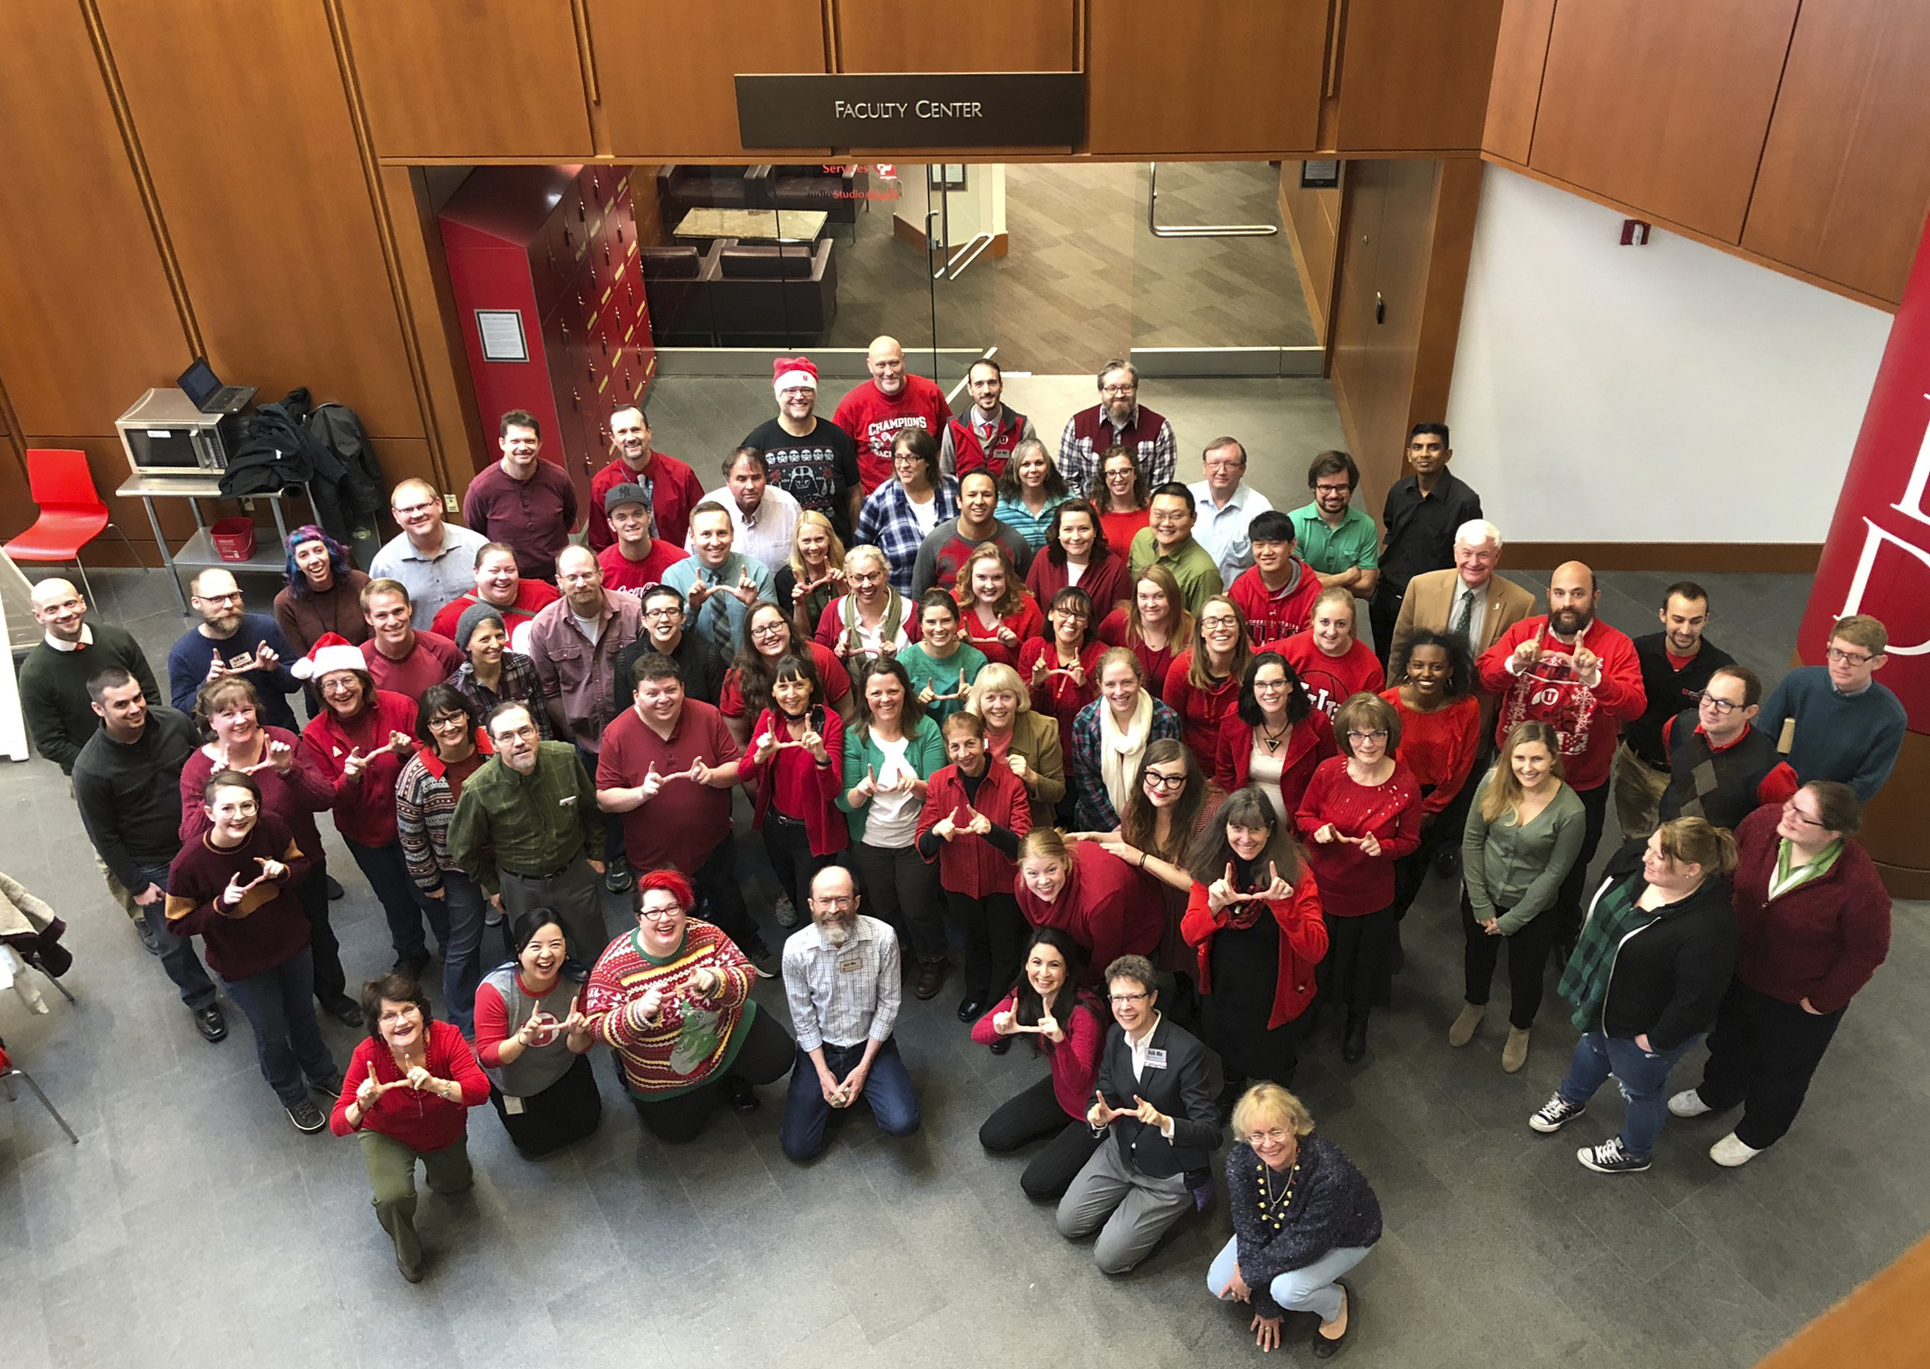 group of librarians and staff from the Marriott Library in holiday themed clothing.  Many of them are making a U with their hands.